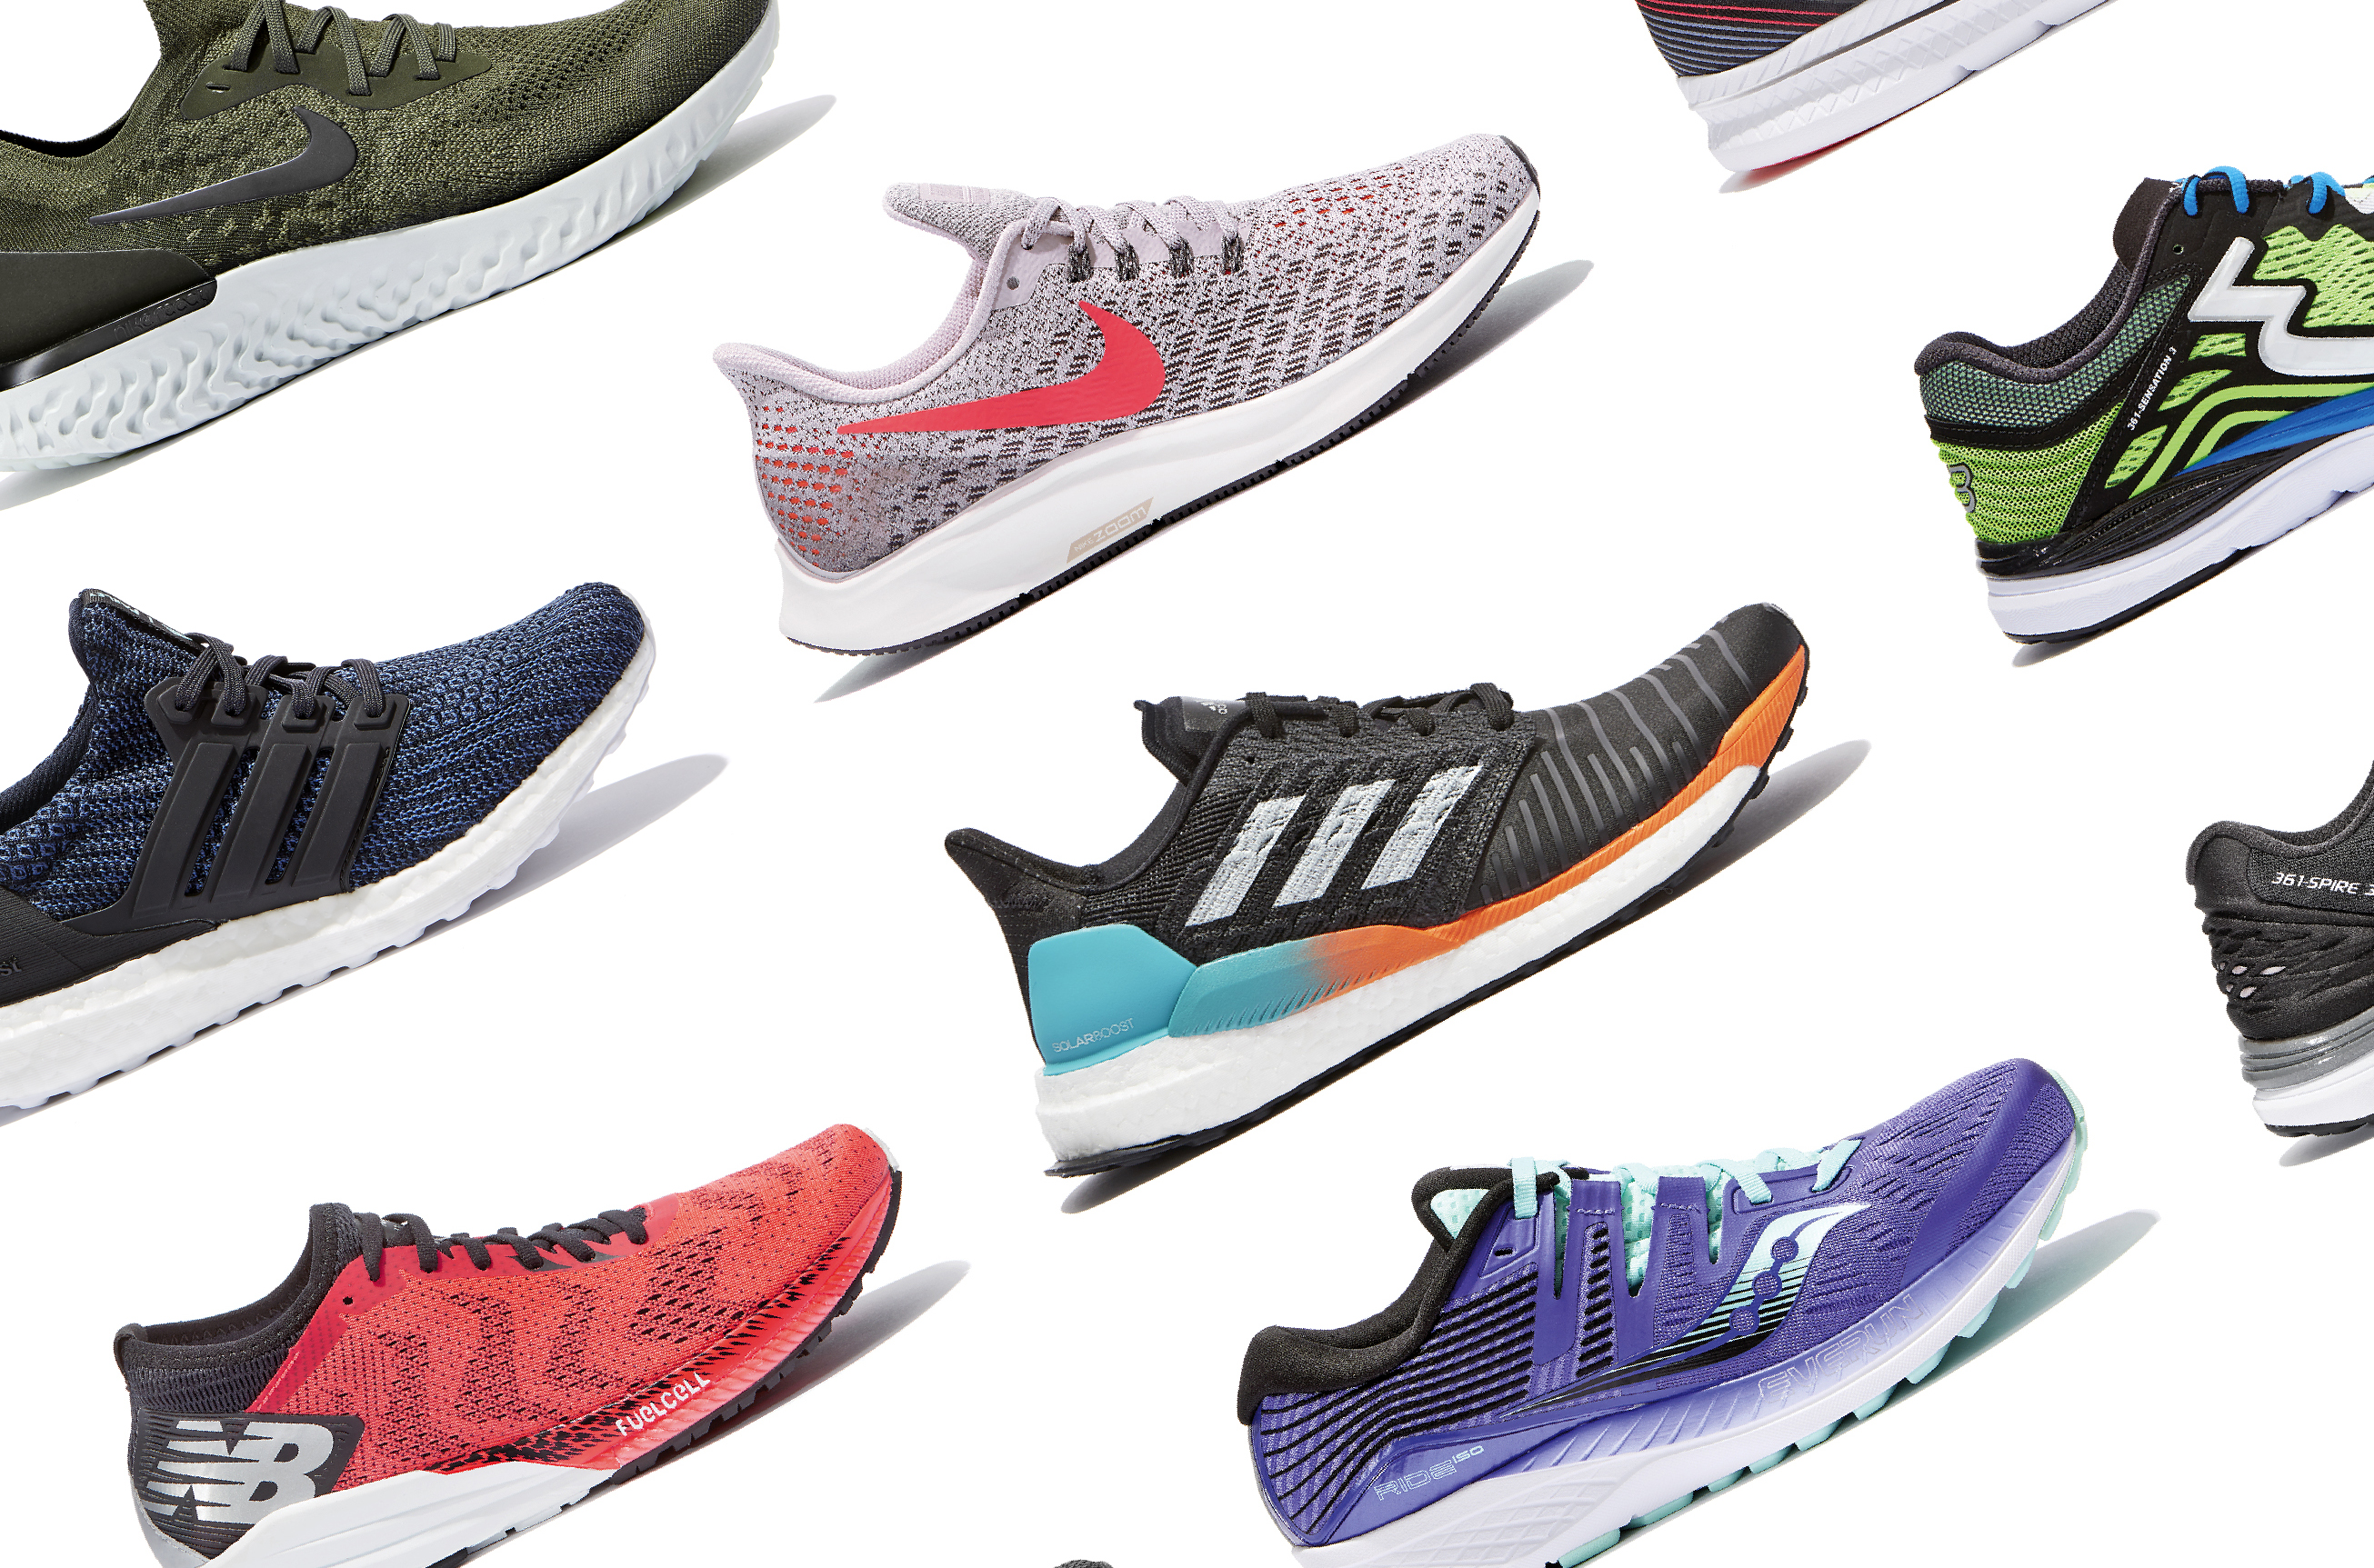 The best running shoes 2018: the best male and female running trainers,  tested in the lab and on the road - Runner's World